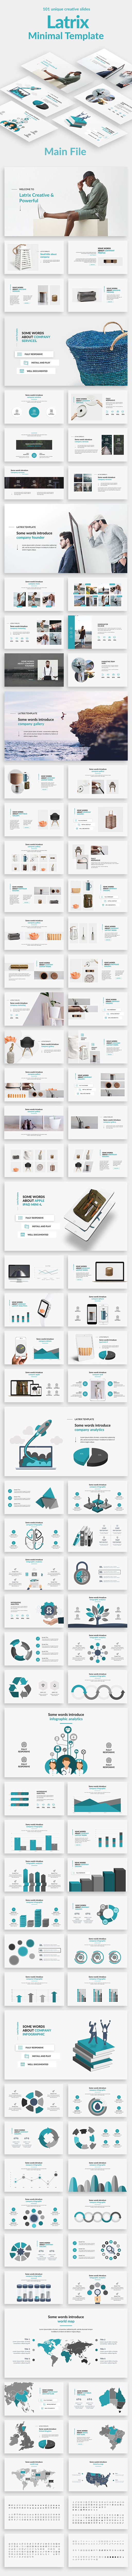 Latrix Minimal Google Slide Template - Google Slides Presentation Templates